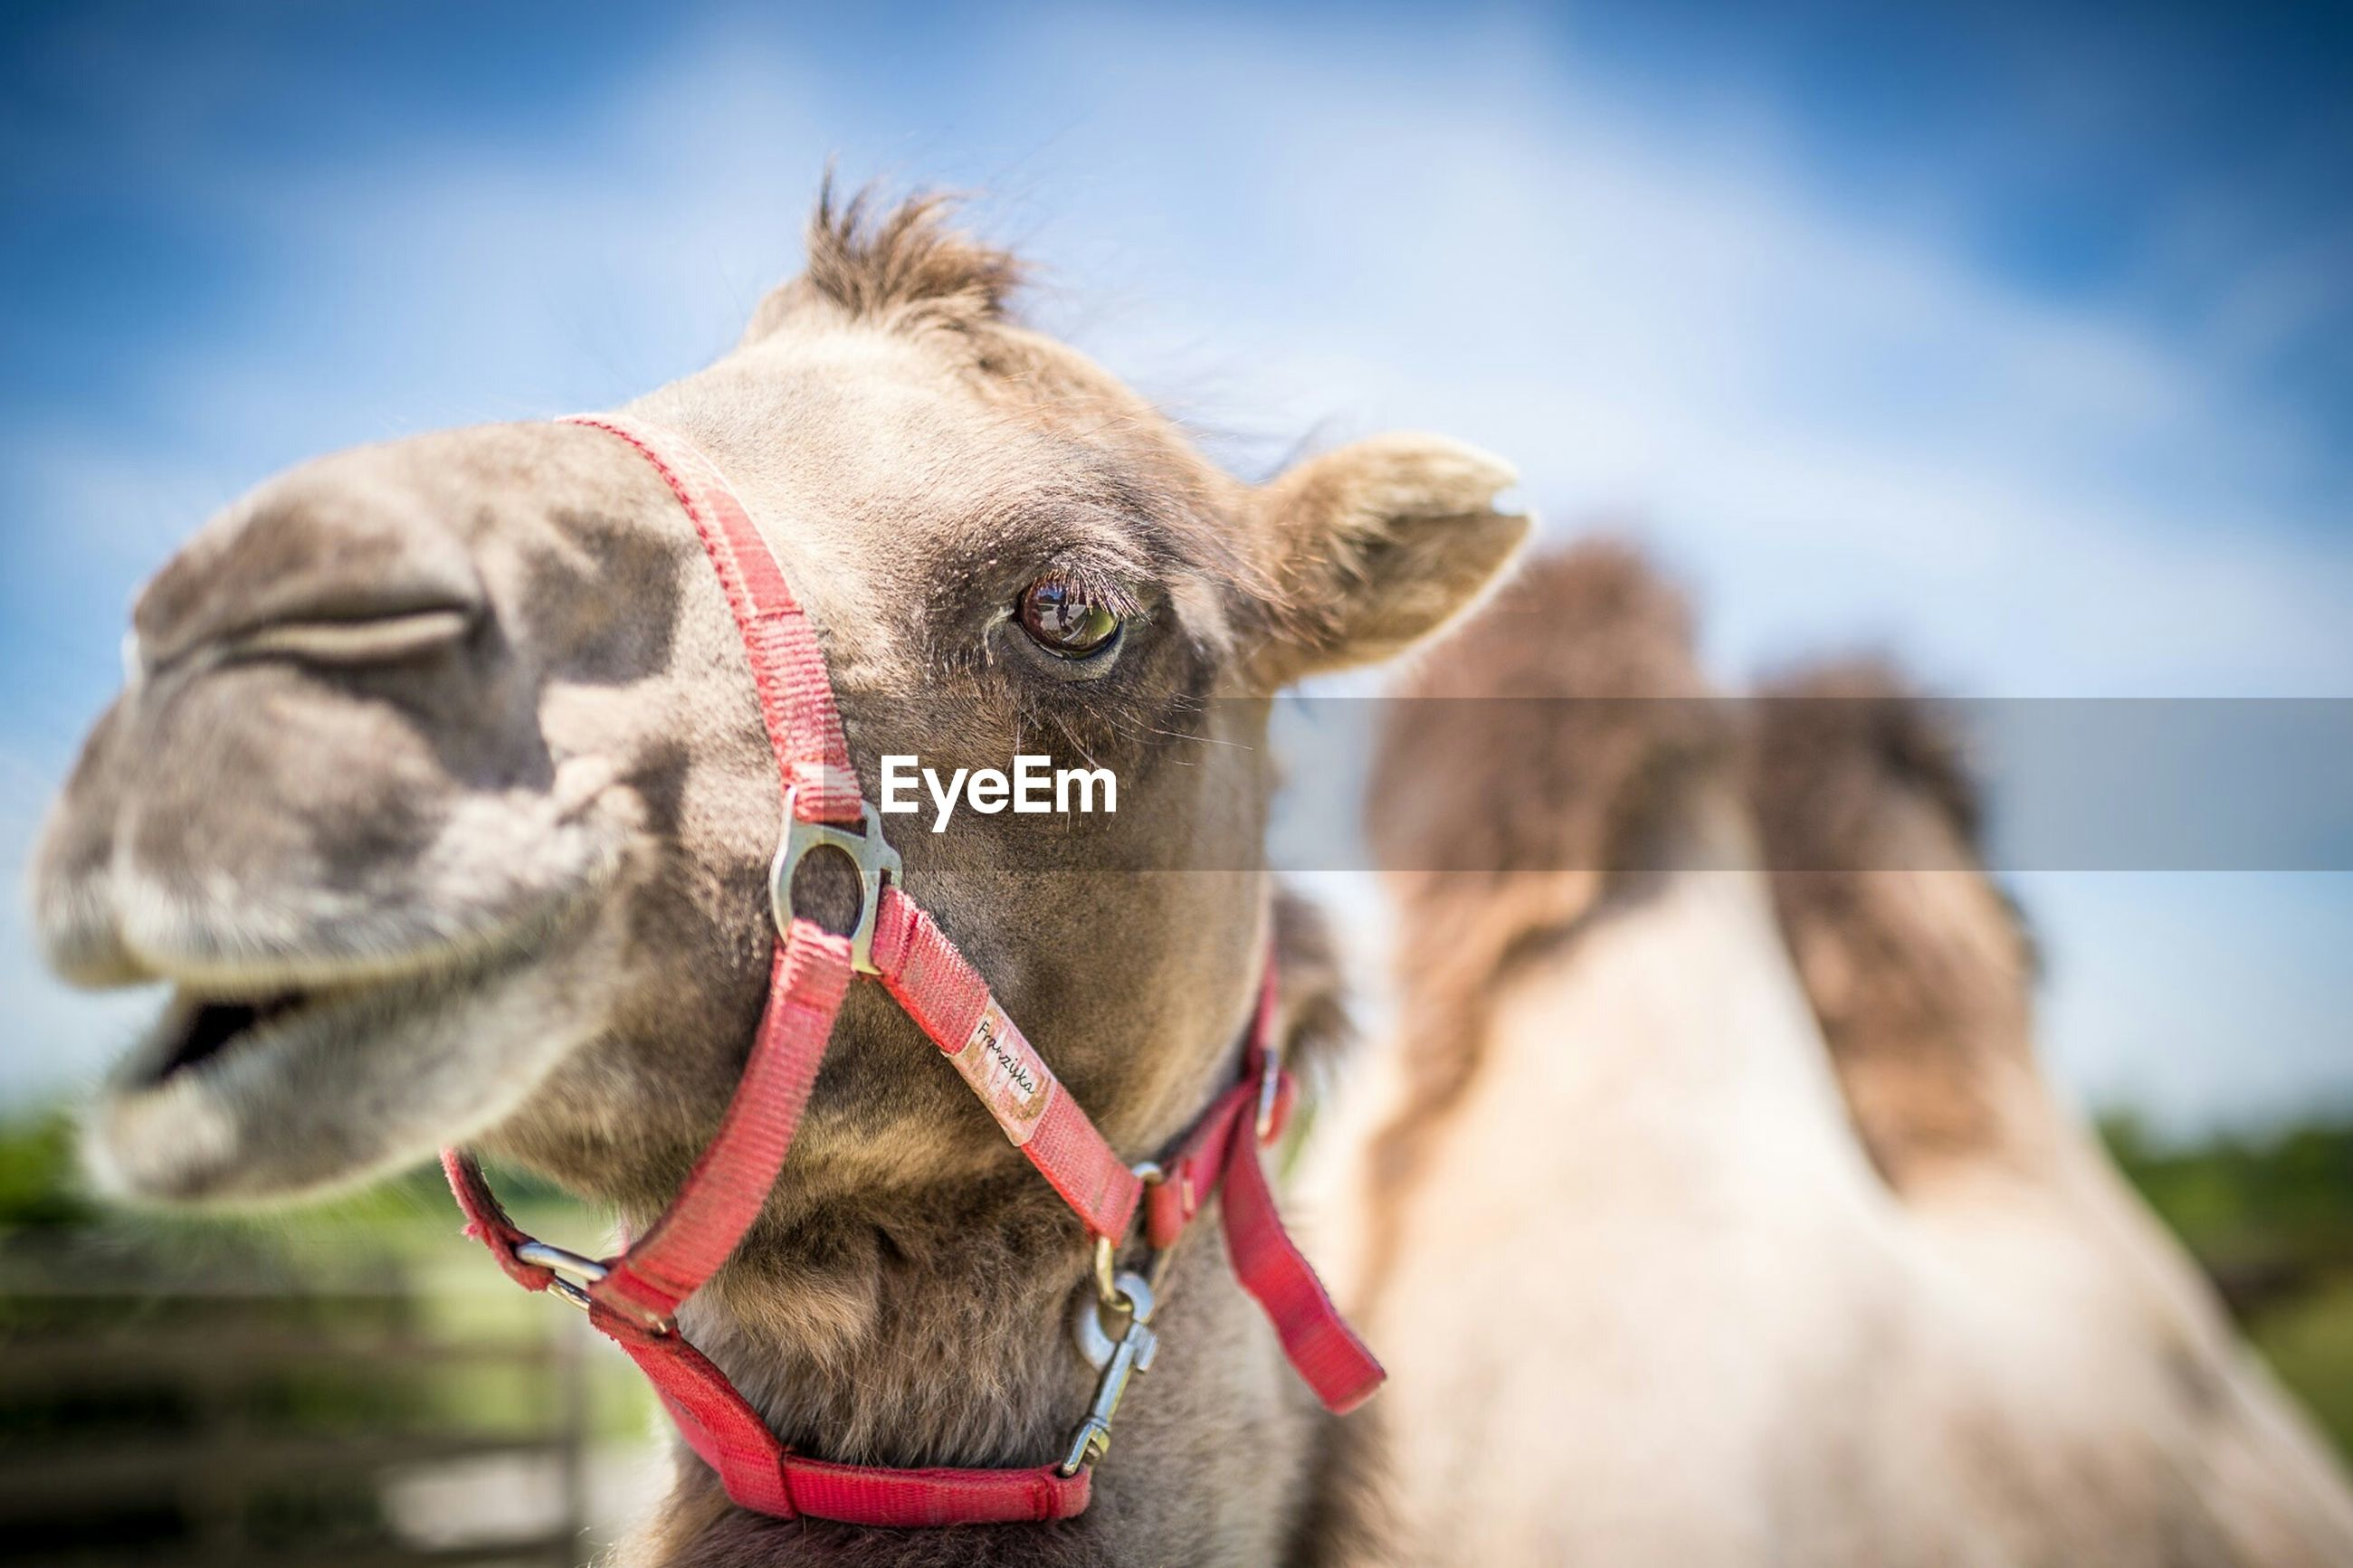 animal themes, one animal, domestic animals, mammal, focus on foreground, close-up, animal head, sky, horse, livestock, working animal, dog, portrait, day, outdoors, sunlight, animal body part, nature, looking at camera, camel